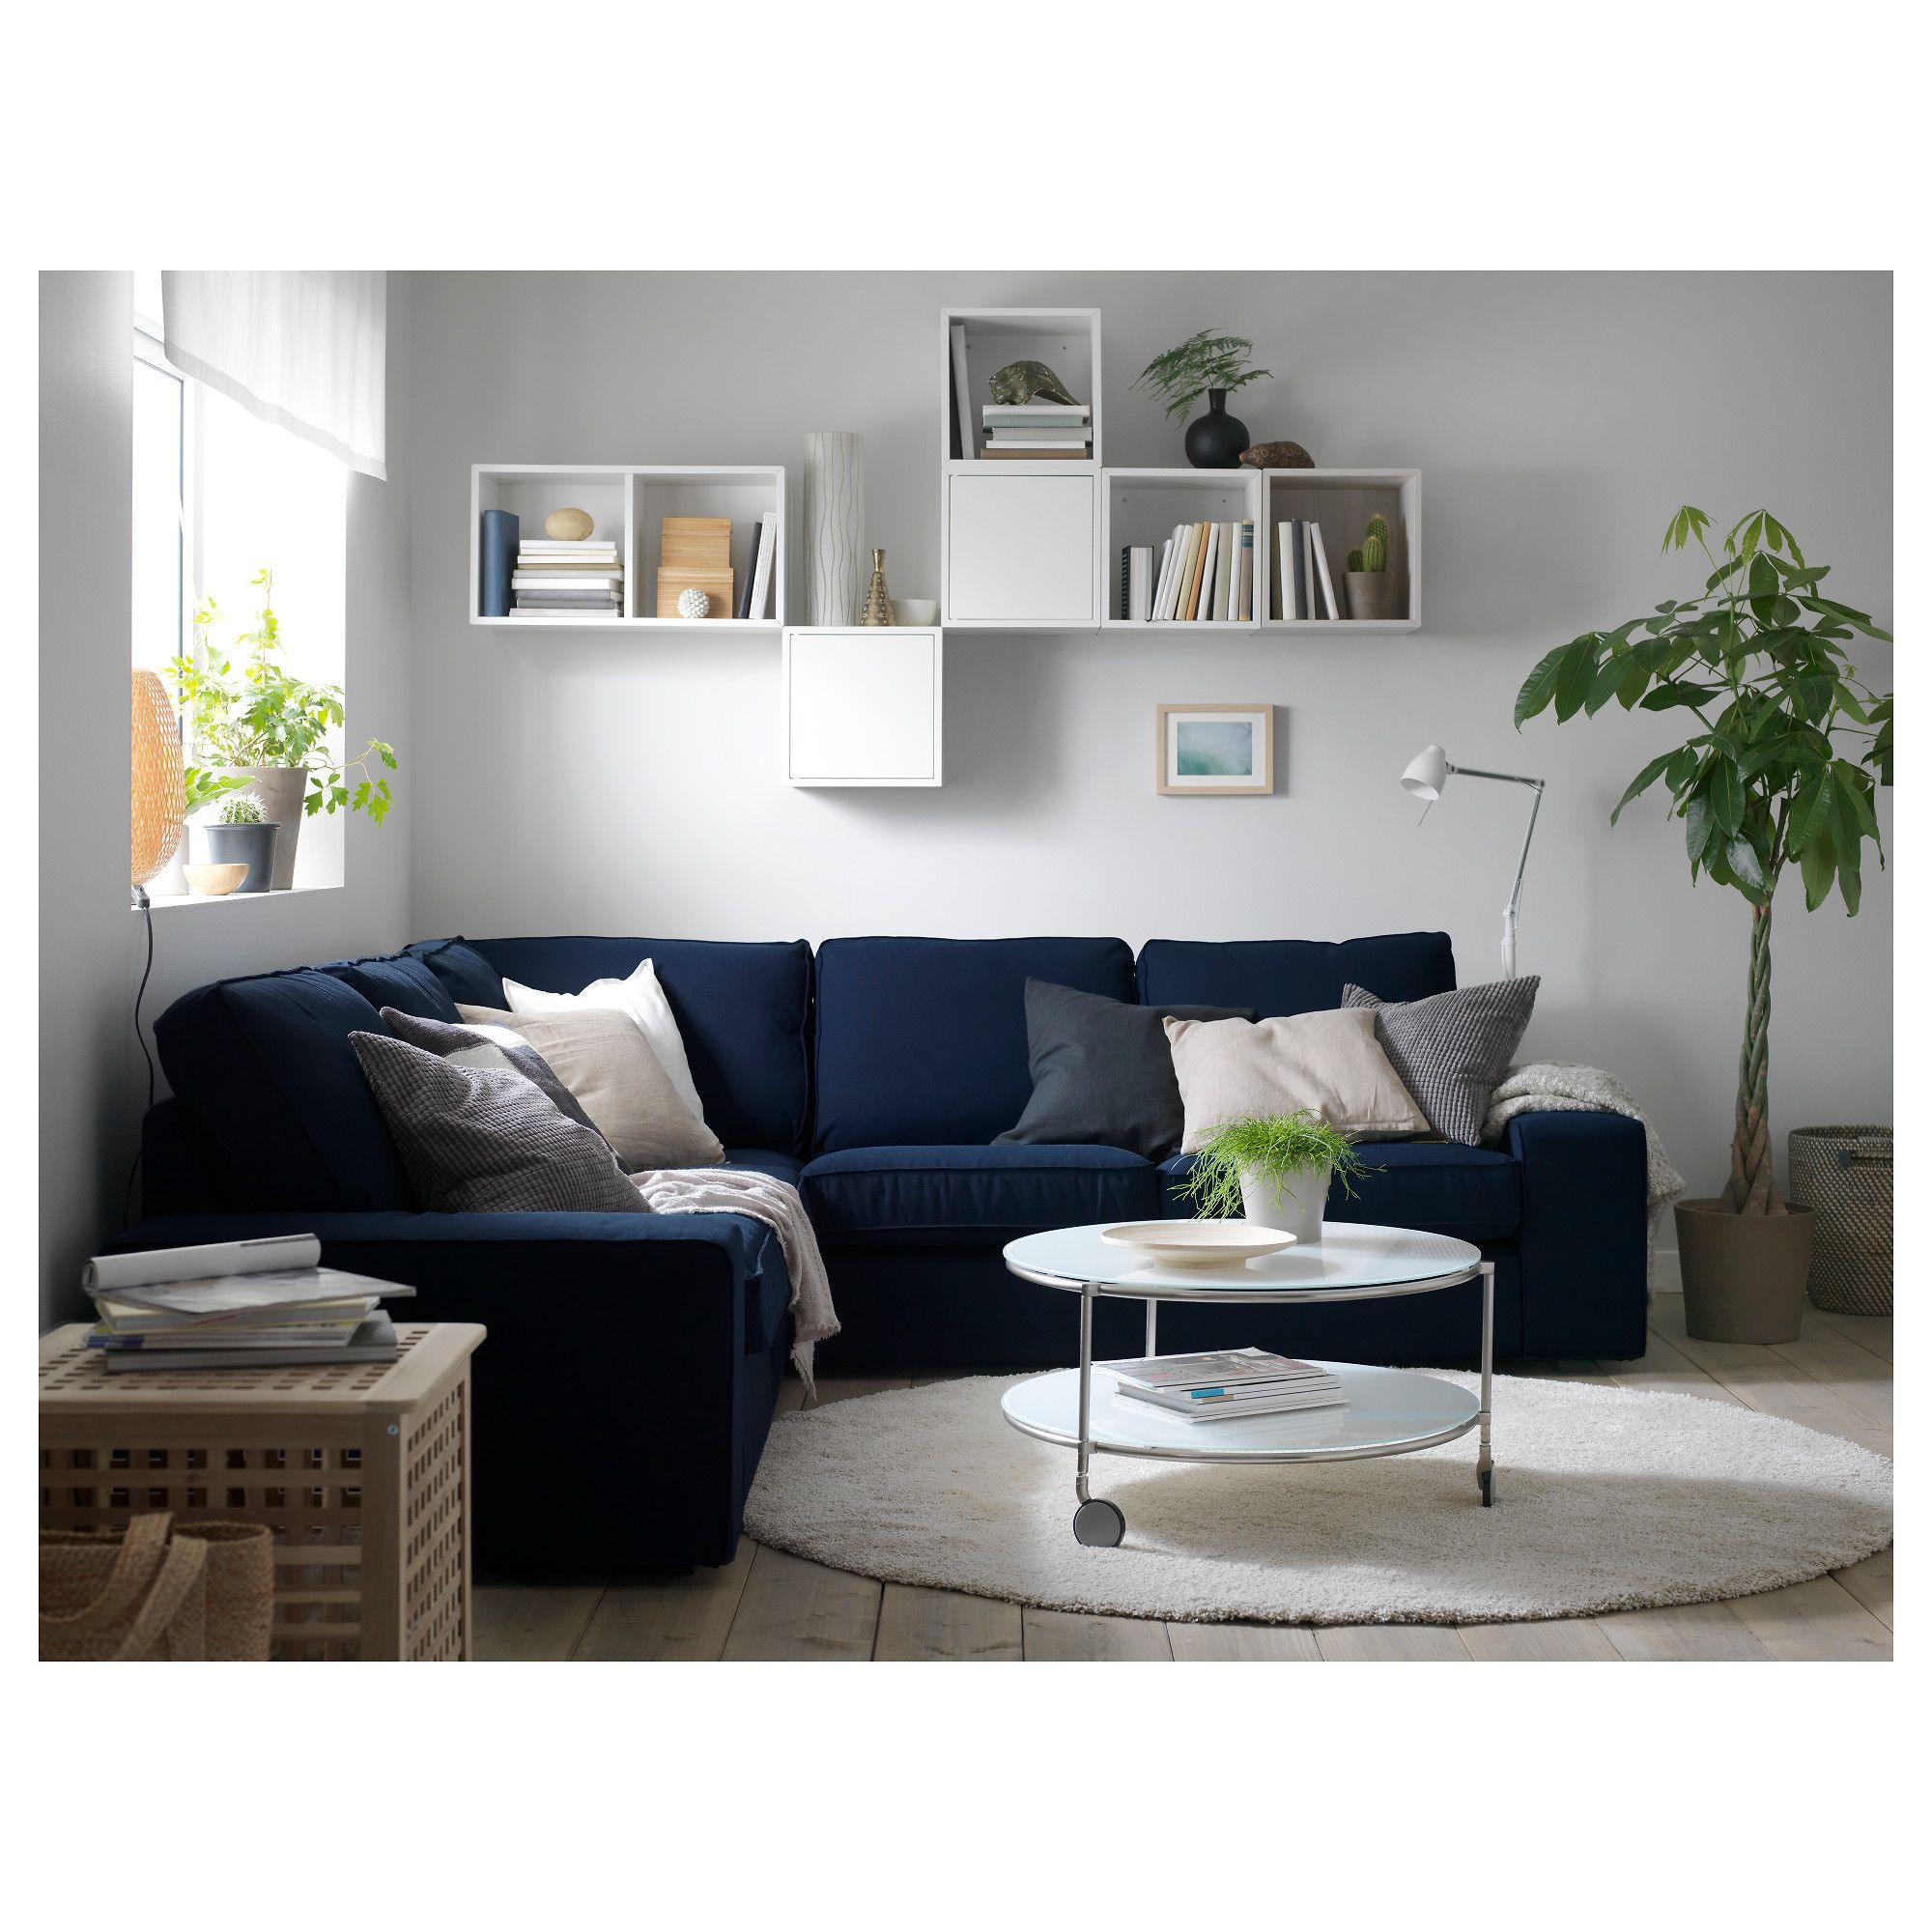 Shop for Furniture, Home Accessories & More Ikea living